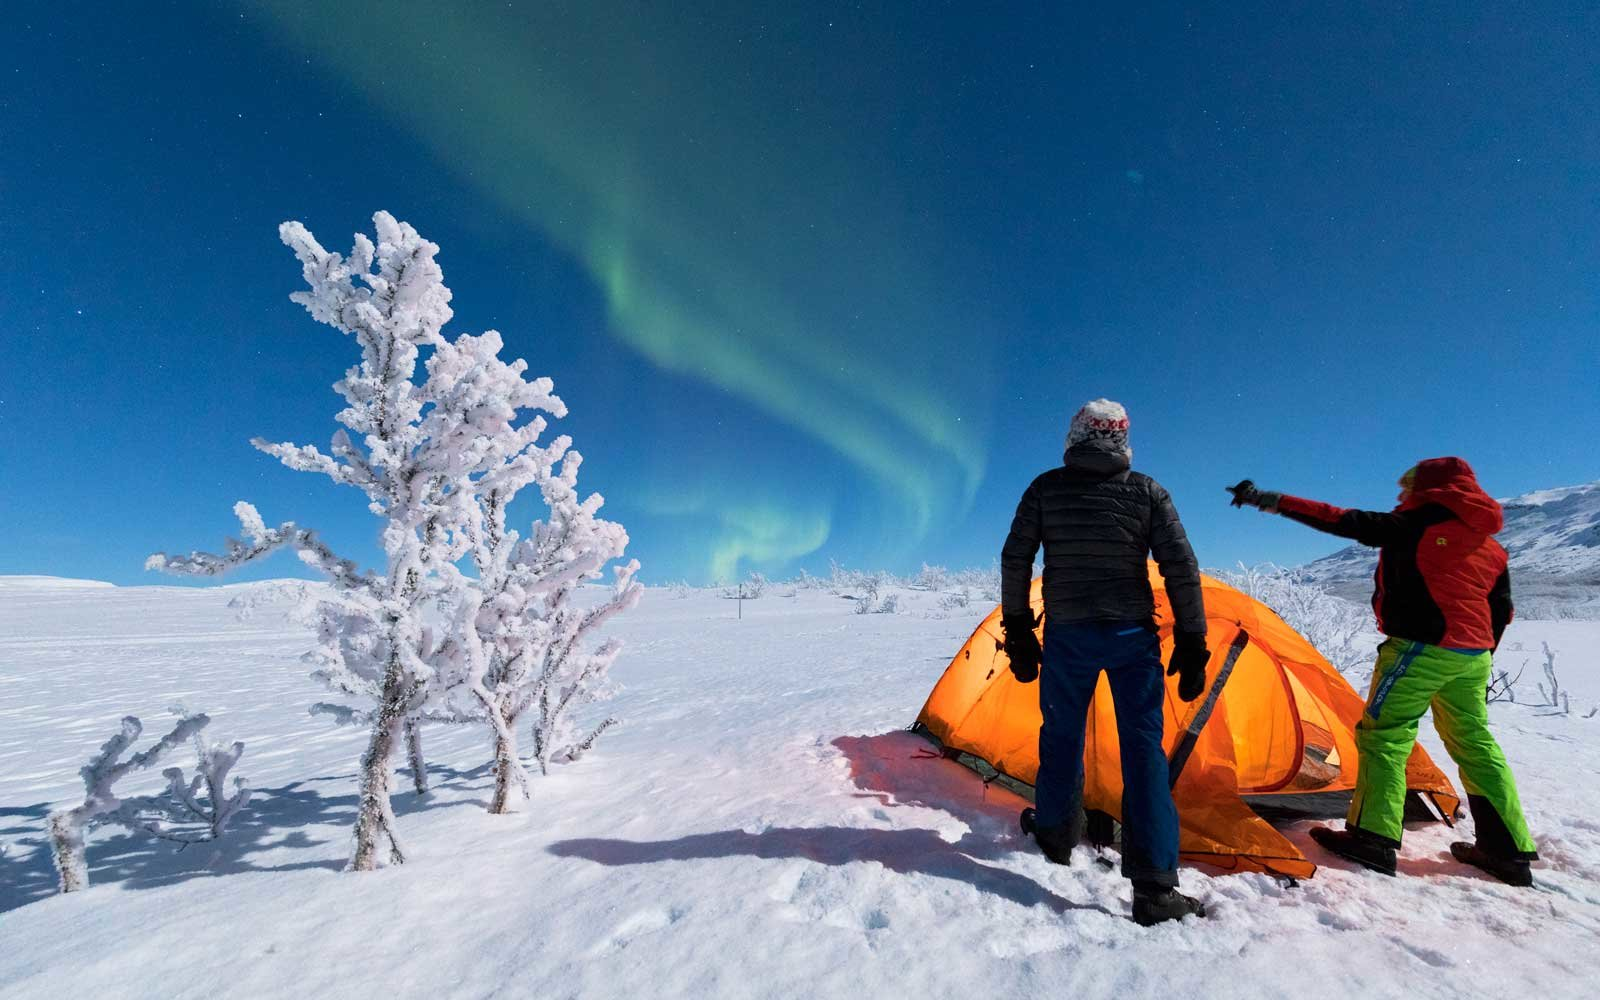 Hikers outside tent look at the Northern Lights (Aurora Borealis), Abisko